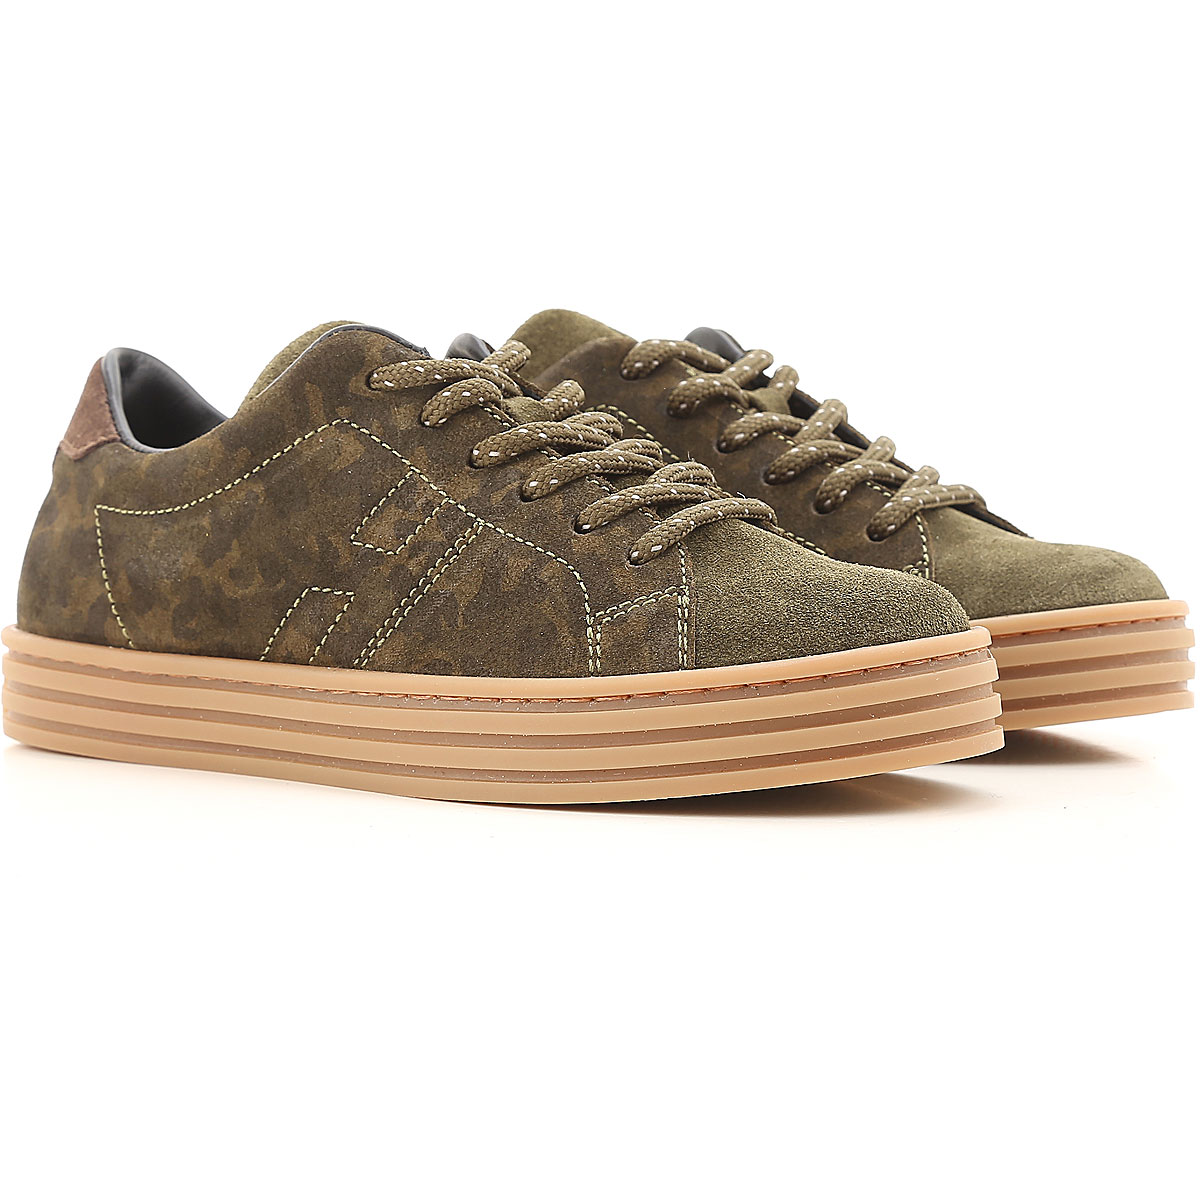 Image of Hogan Sneakers On Sale in Outlet, Military Green, Suede leather, 2017, 23 27 28 29 32